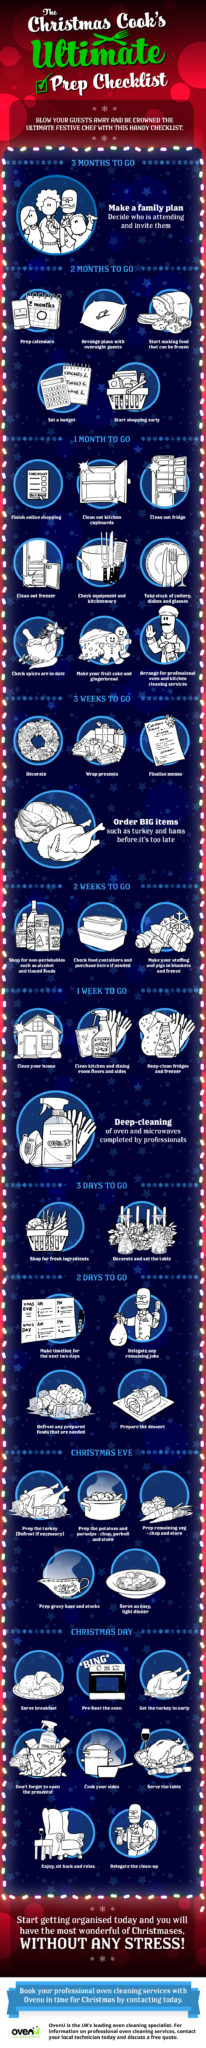 Christmas Checklist Infographic